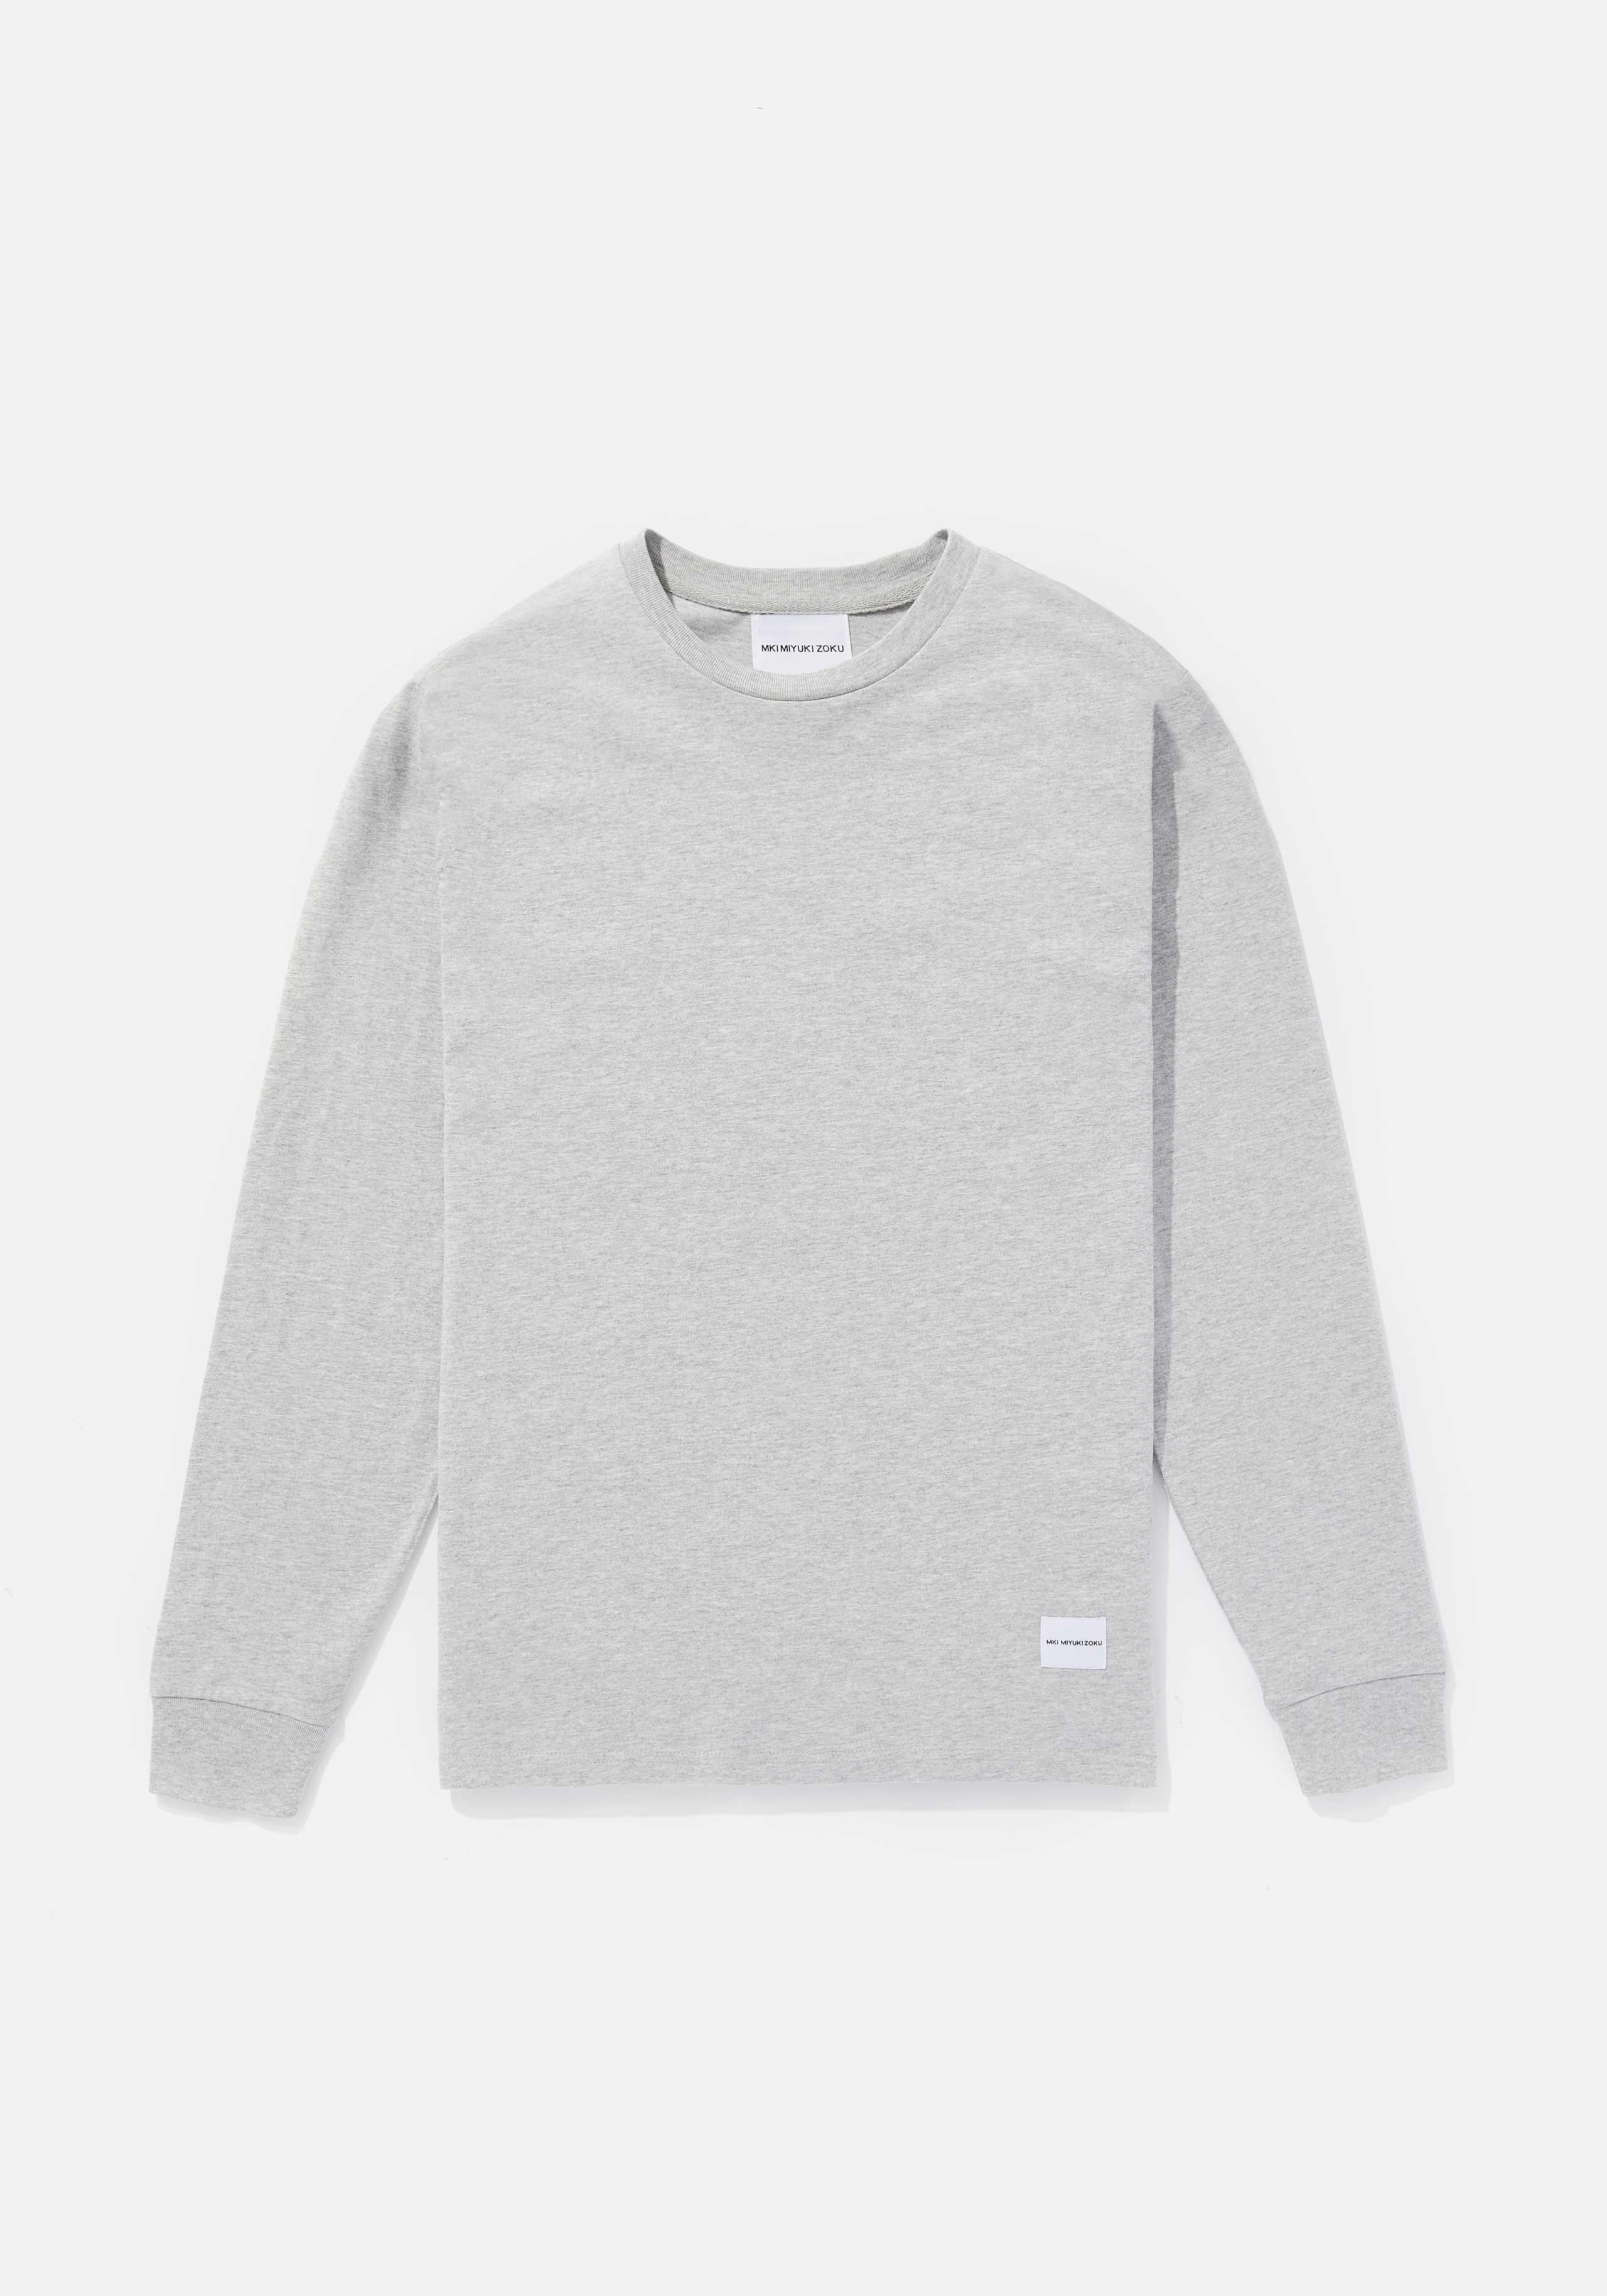 mki relaxed basic long sleeve 1